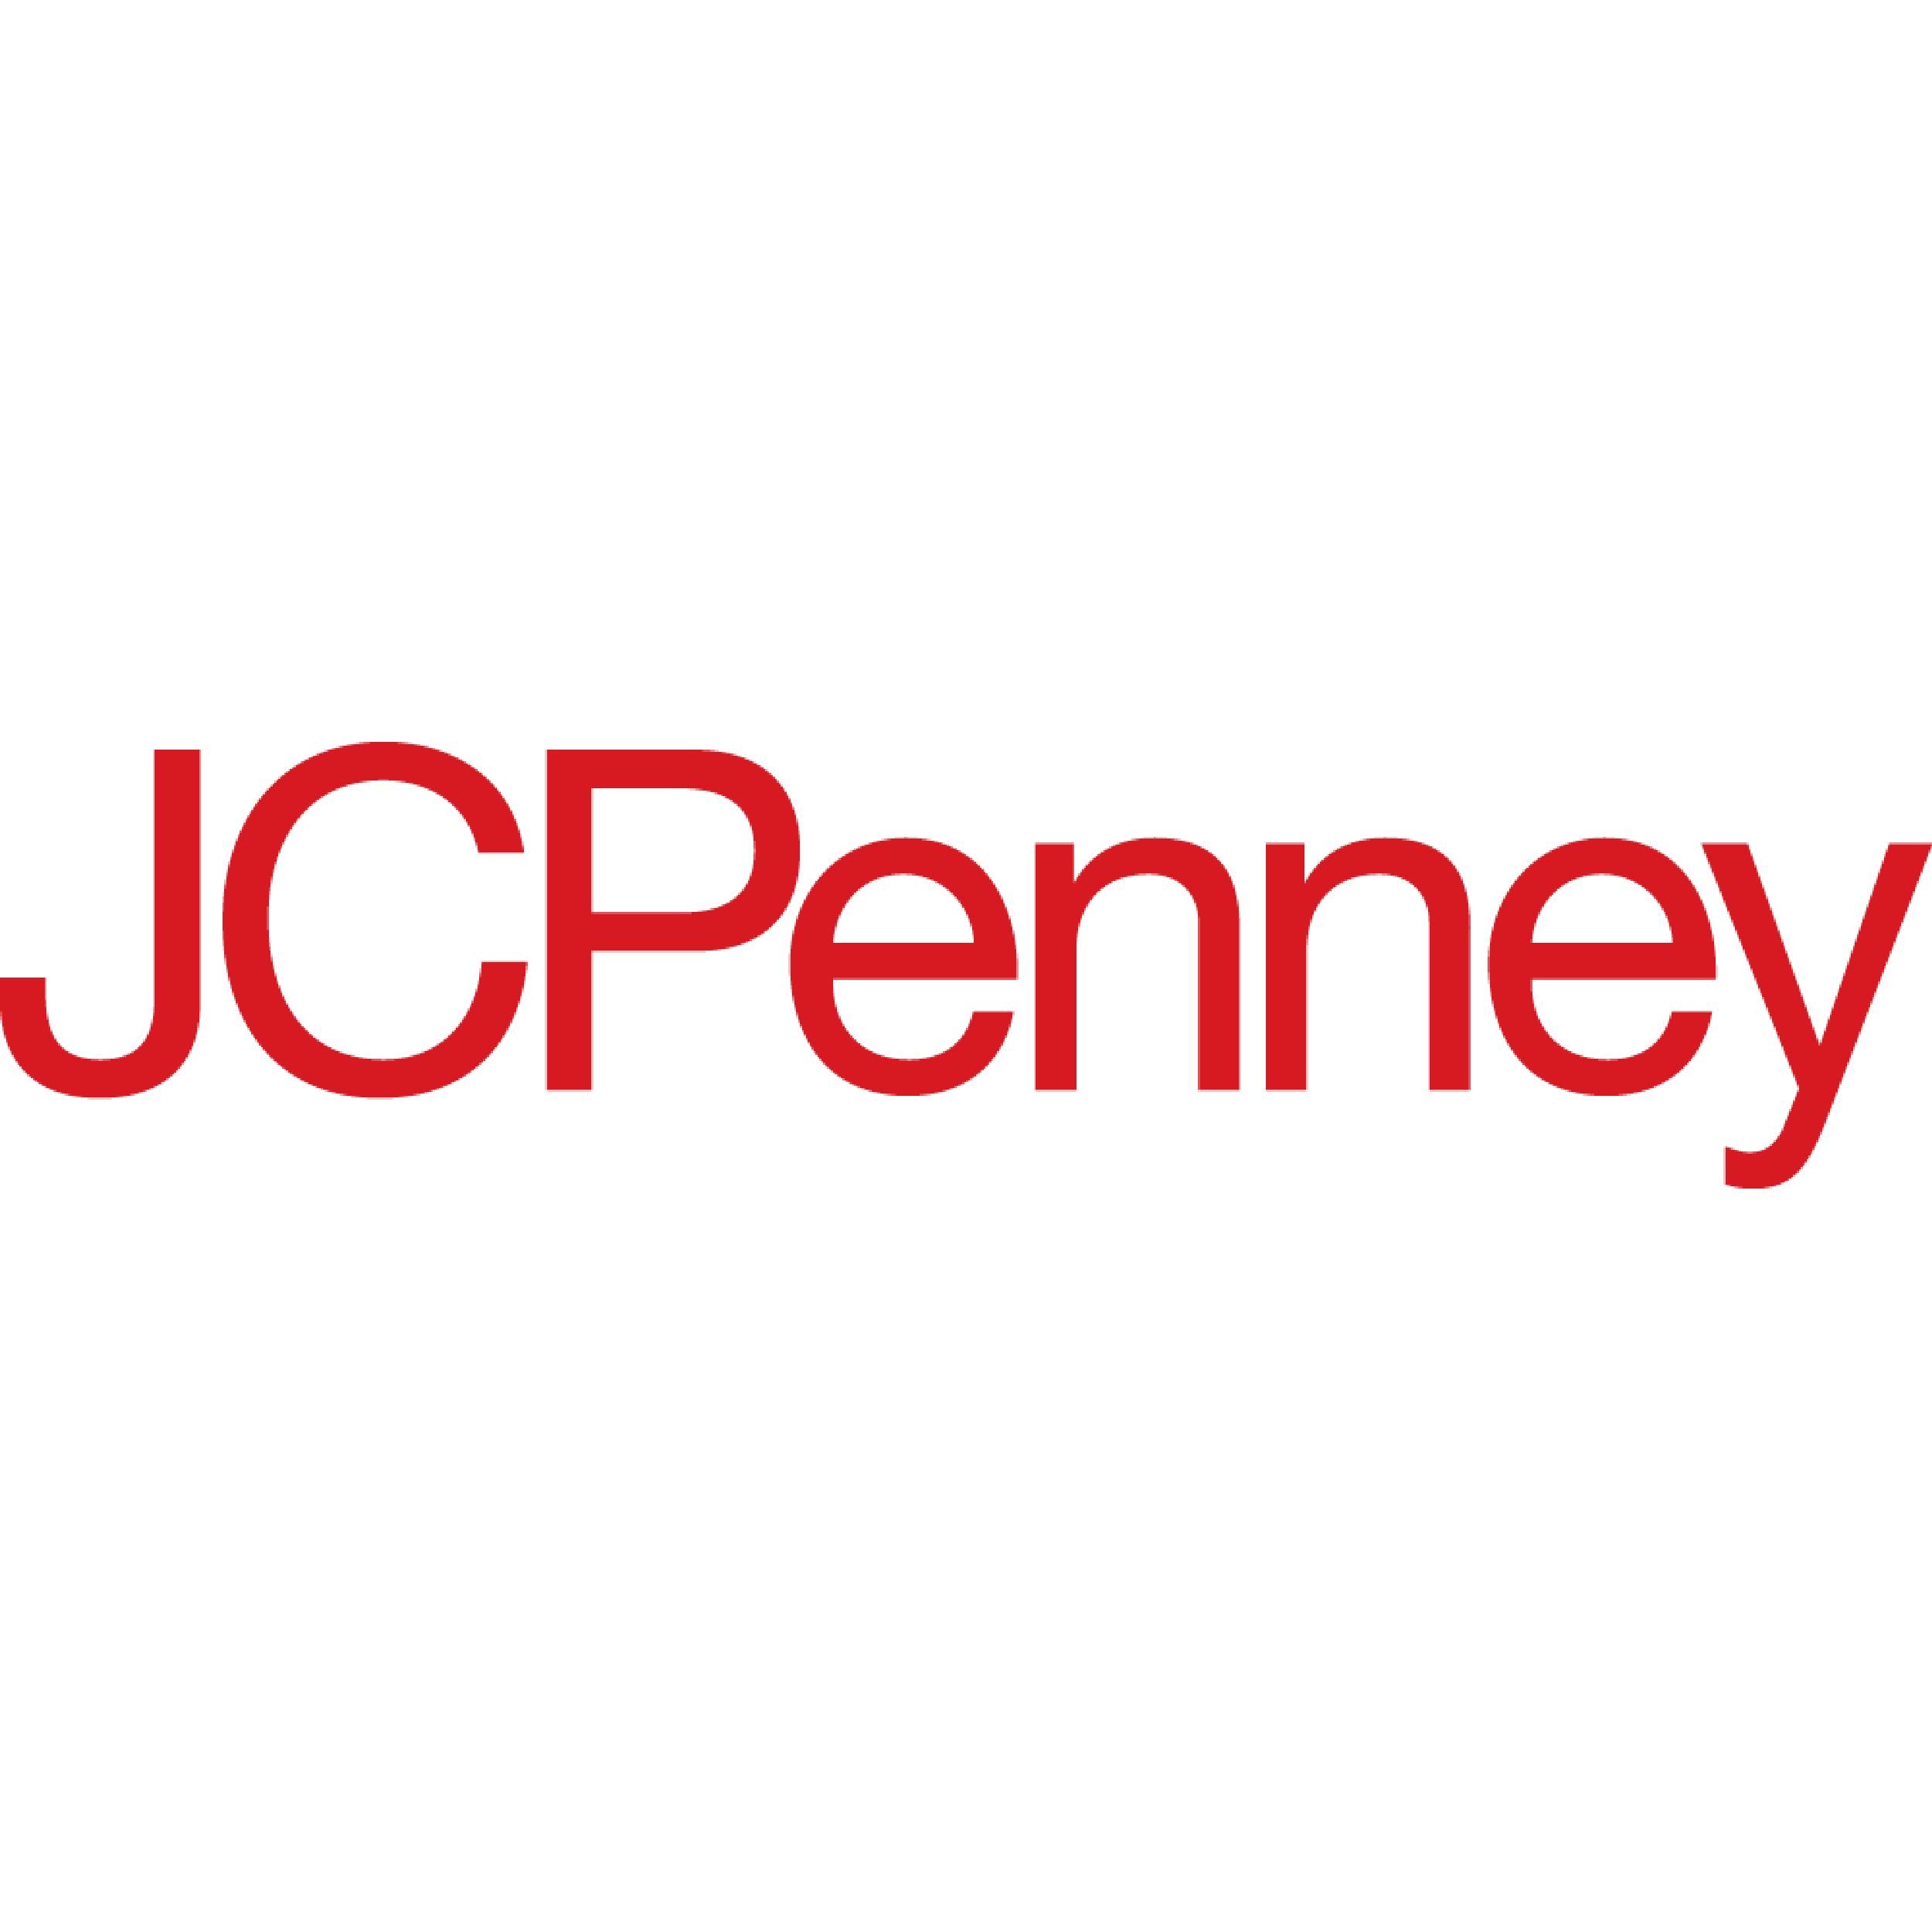 JCPenney - Knoxville, TN - Department Stores